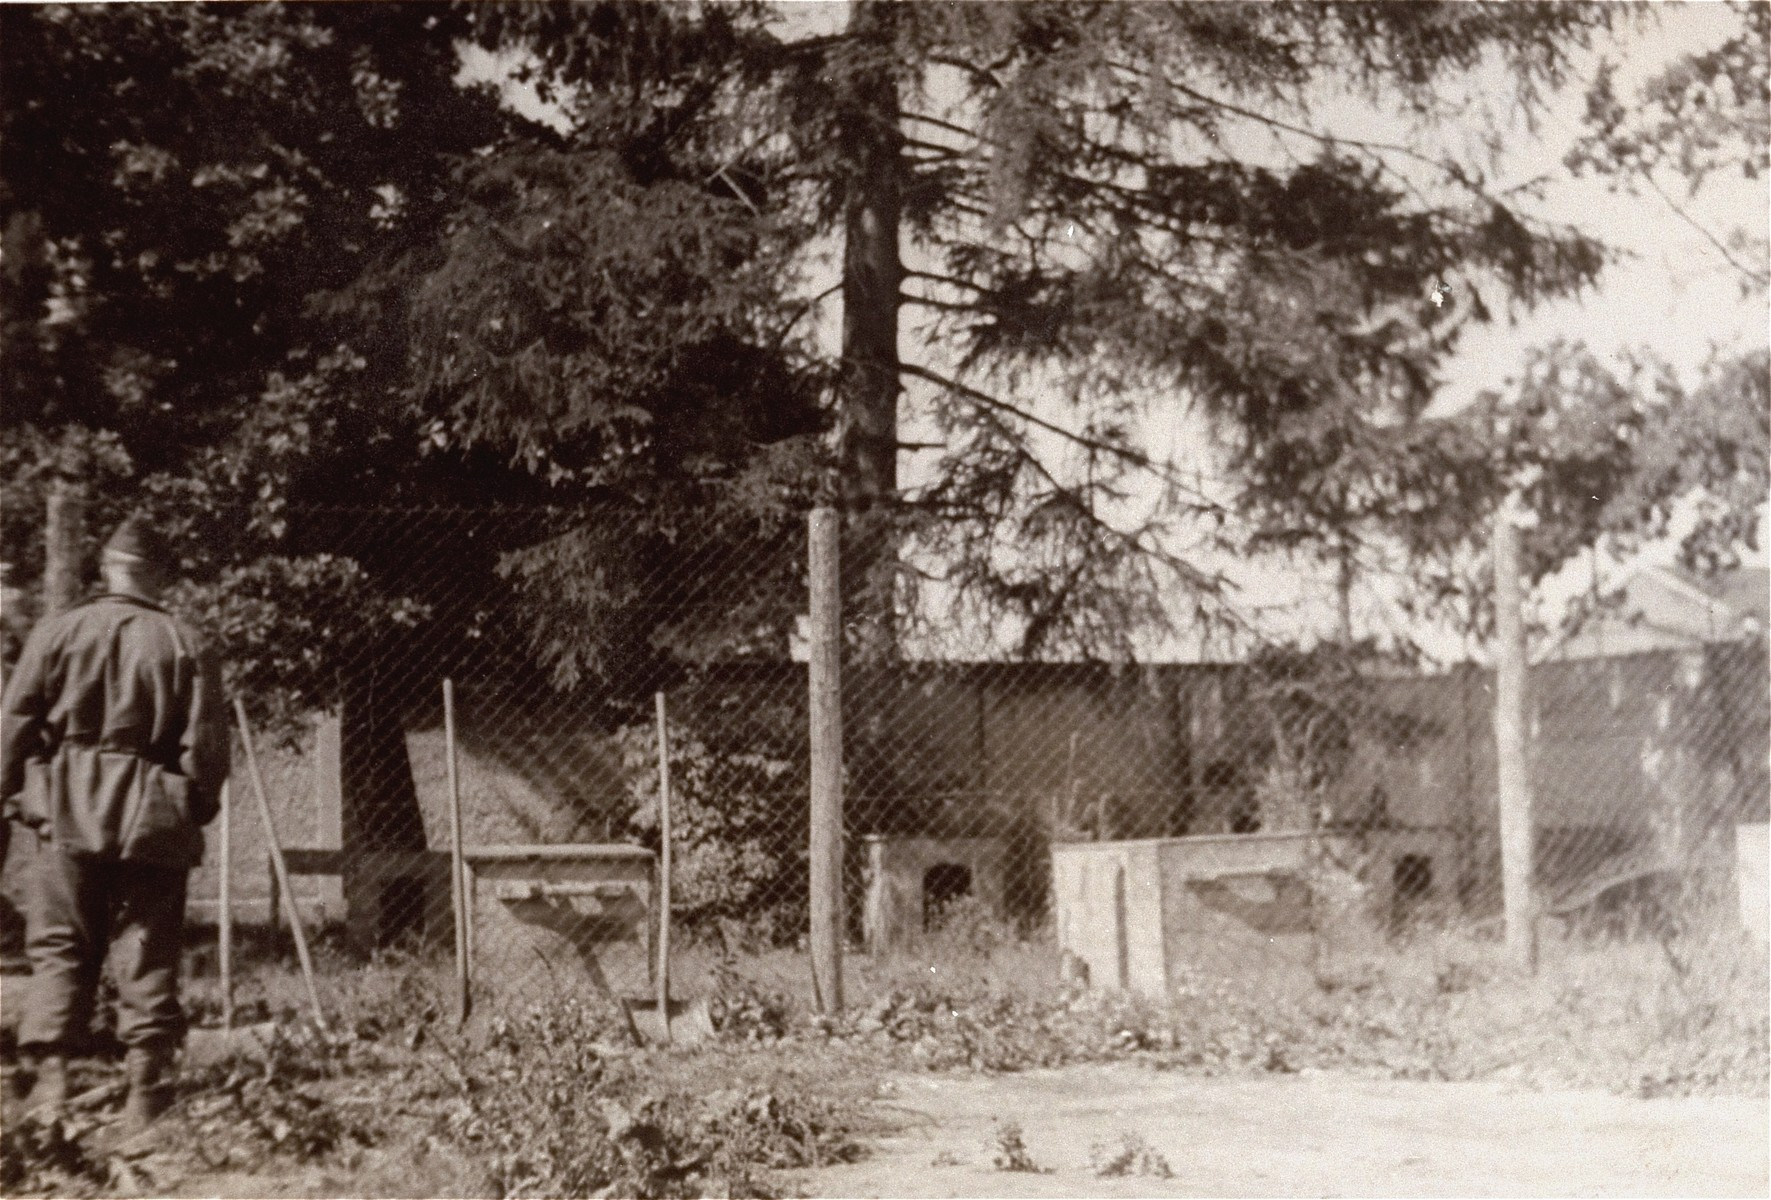 View of the kennel at the Dachau concentration camp.